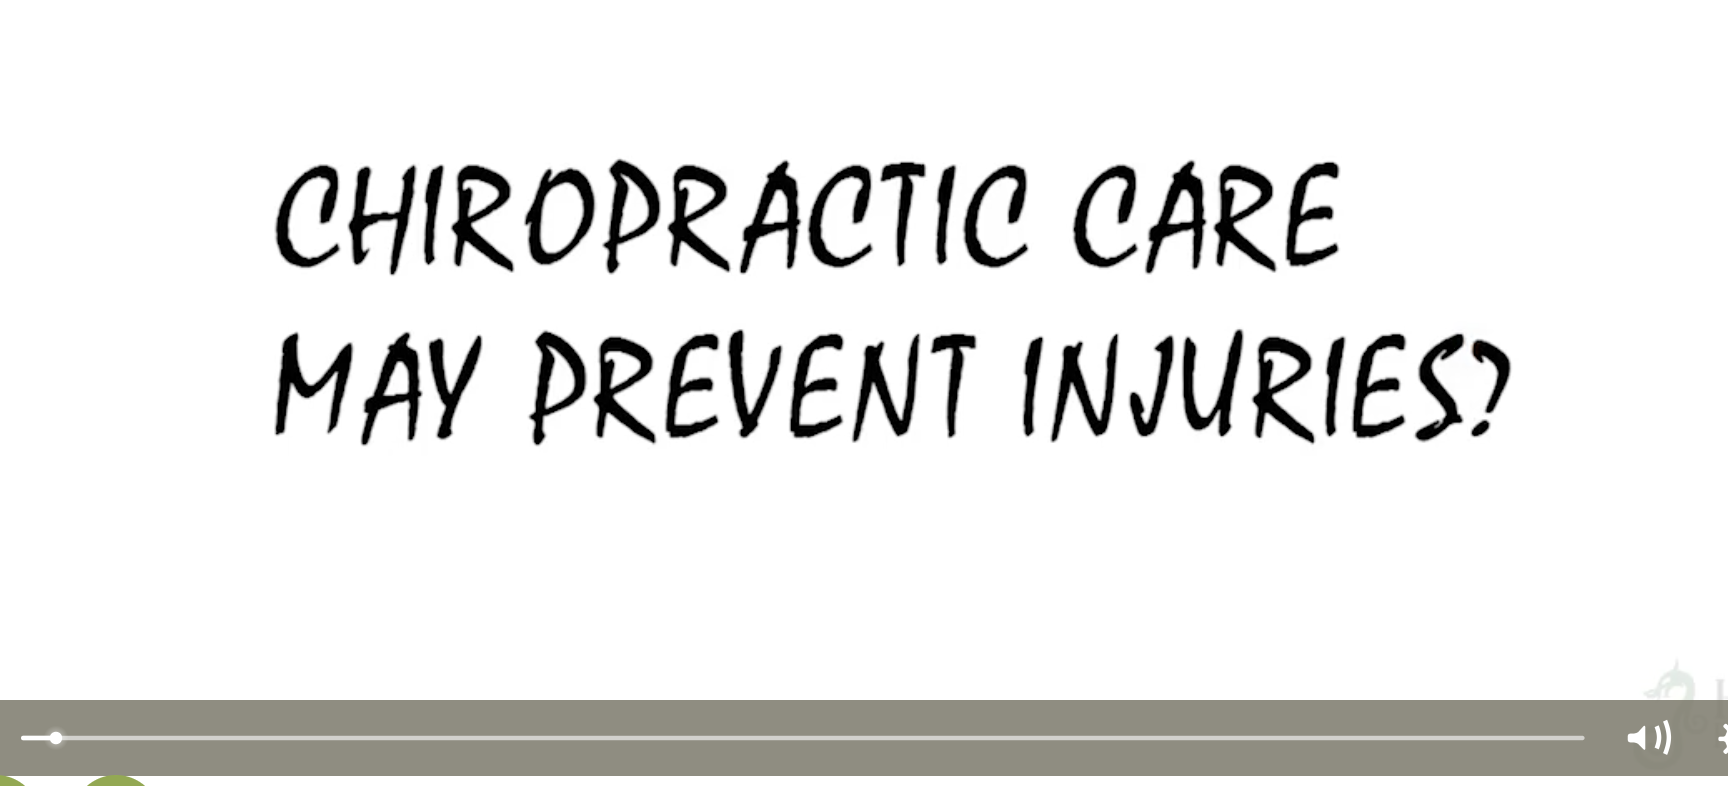 Chiropractic care may prevent injuries